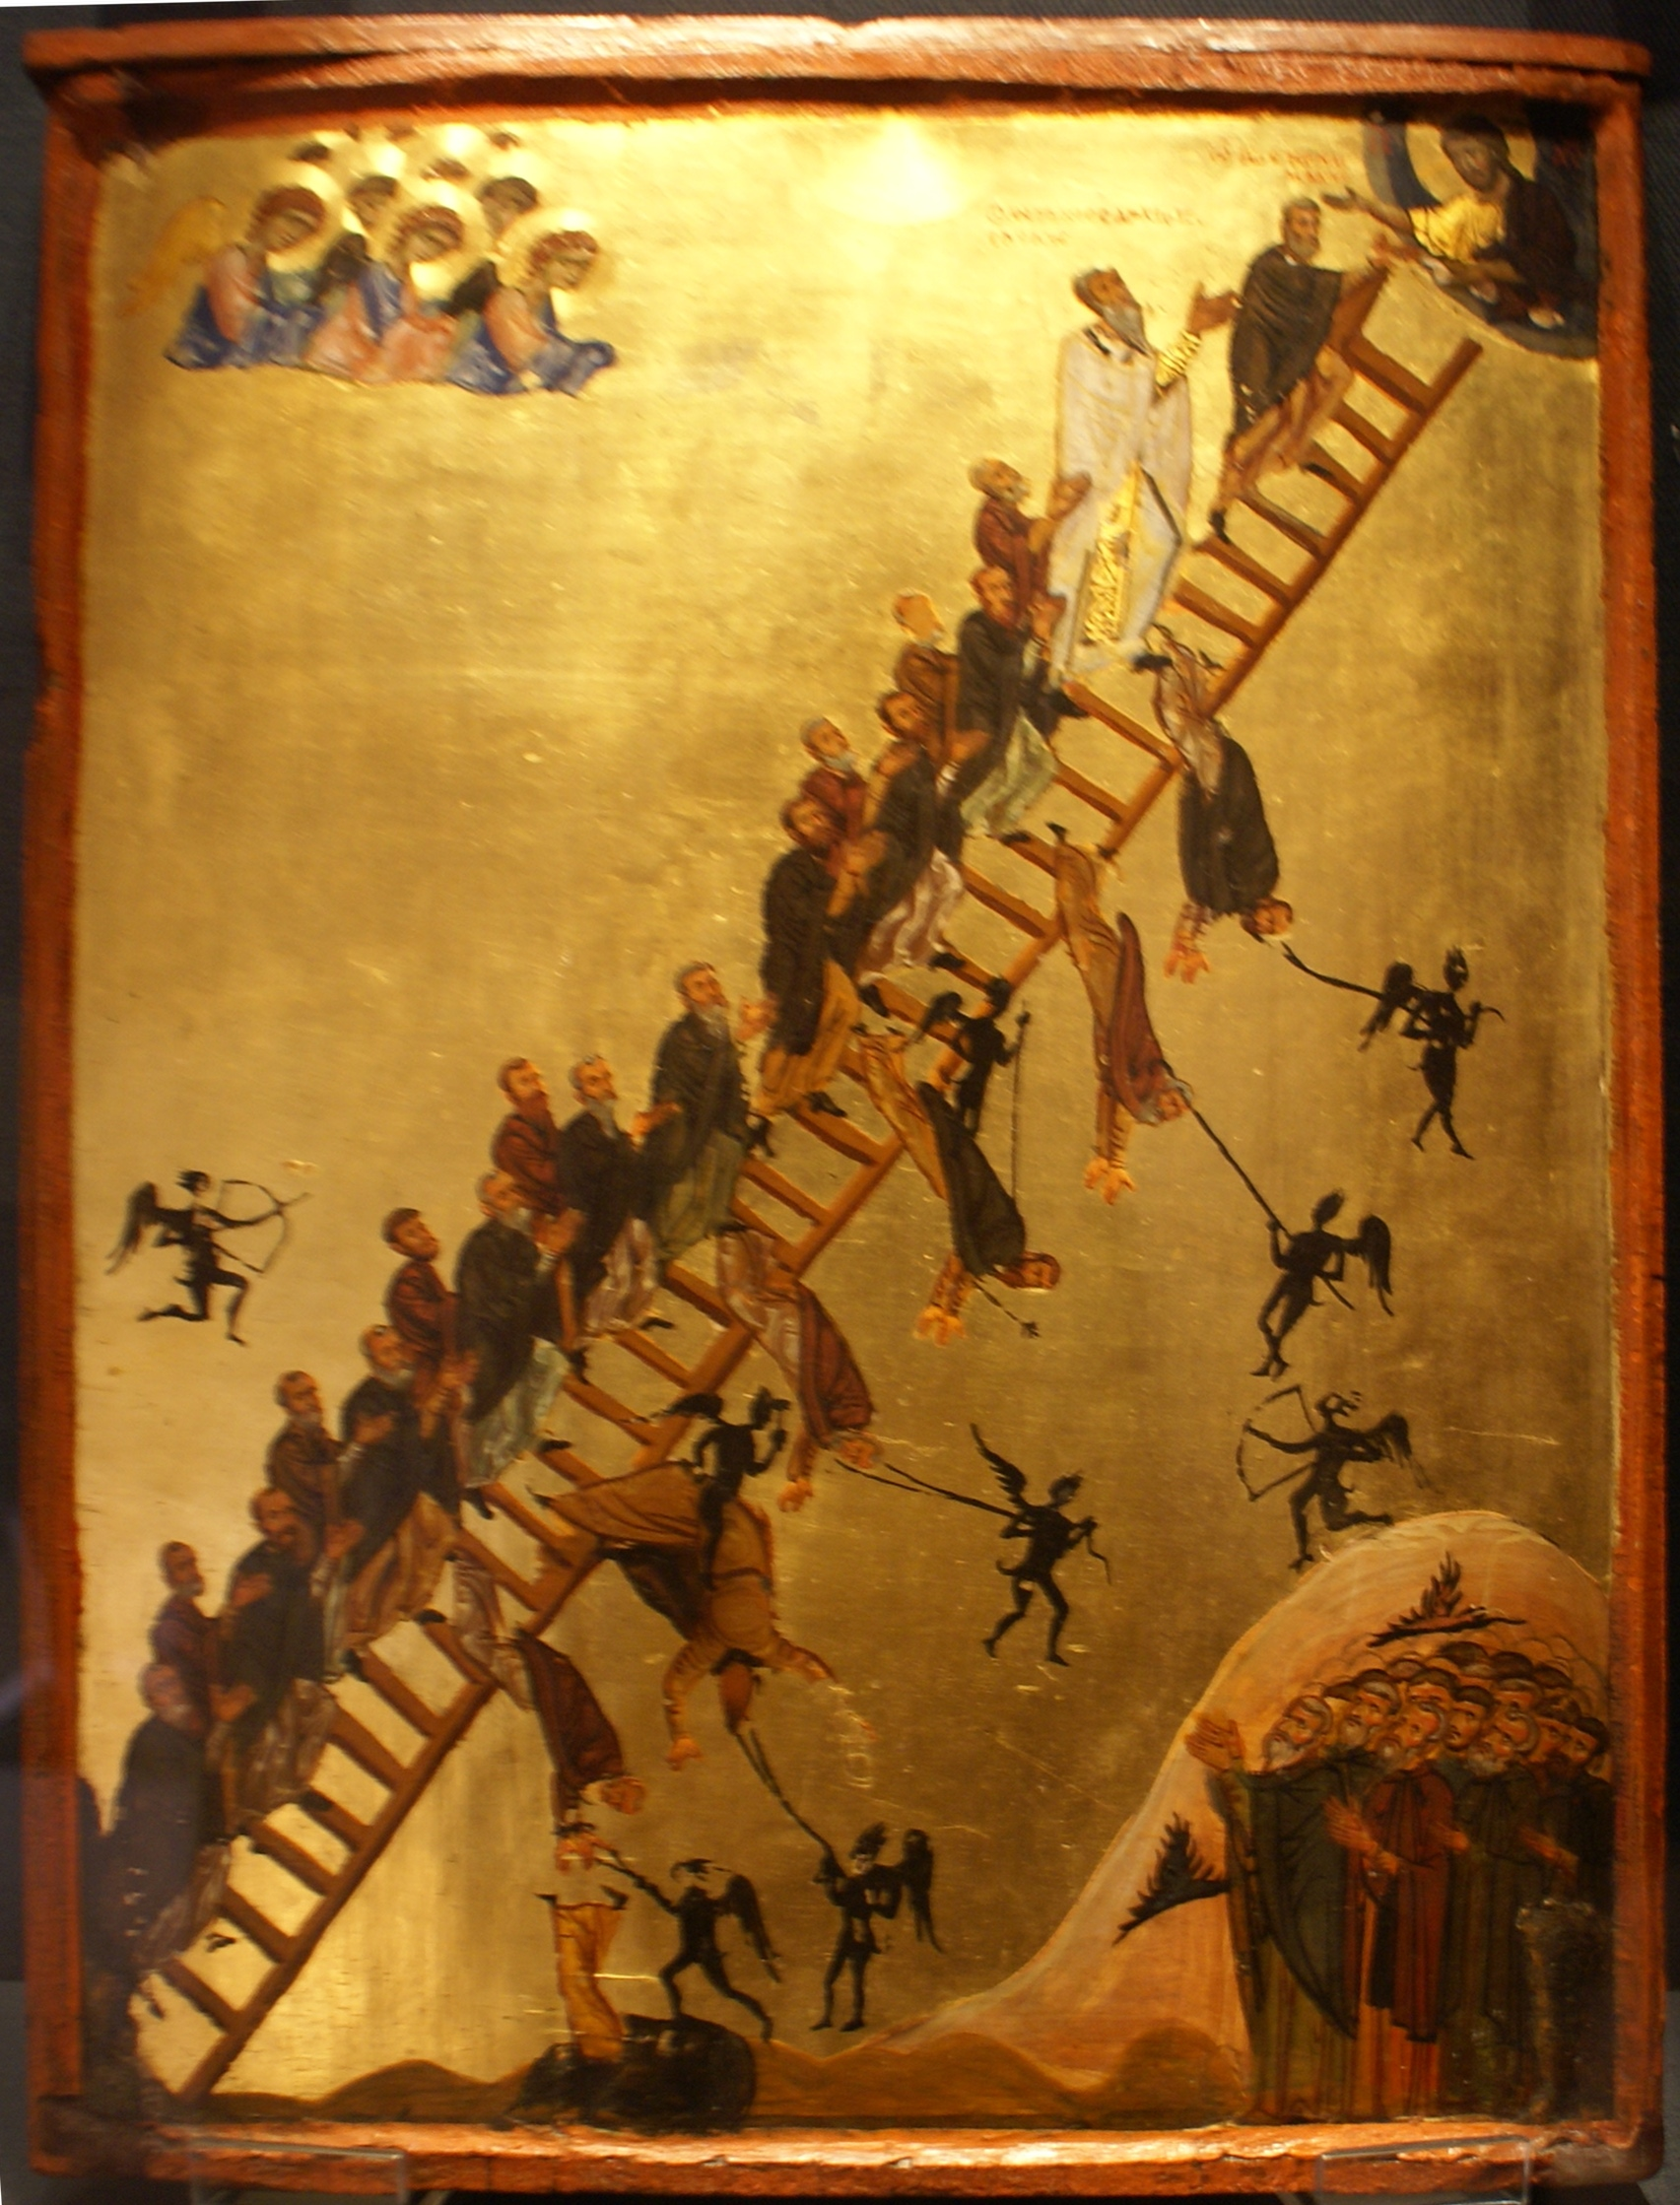 https://upload.wikimedia.org/wikipedia/commons/f/fb/The_Ladder_of_Divine_Ascent.jpg